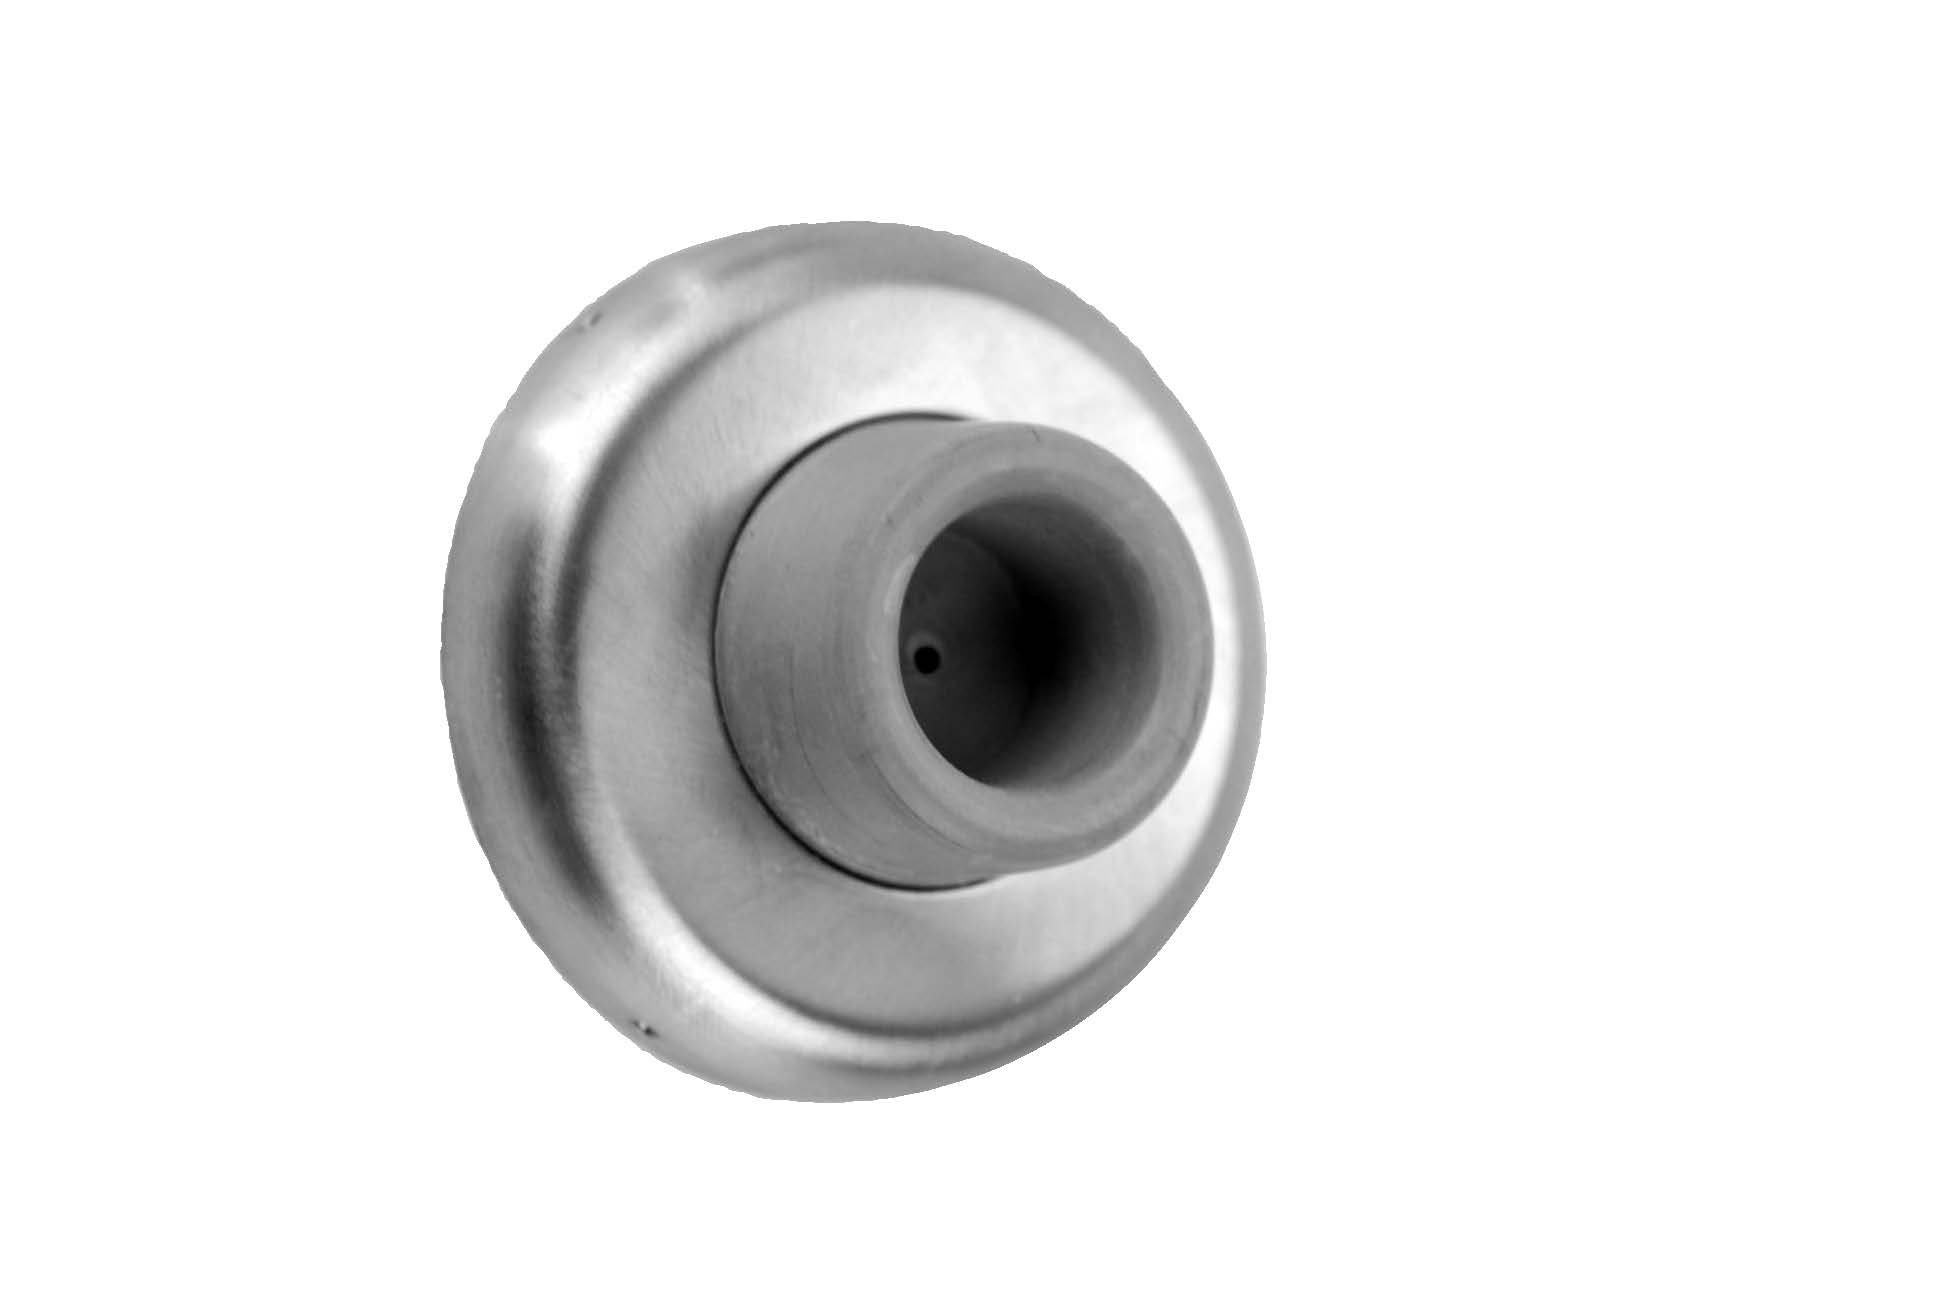 Don-Jo 1407 Wrought Concave Wall Bumper, Satin Chrome Plated, 2-1/2'' Diameter (Pack of 50)